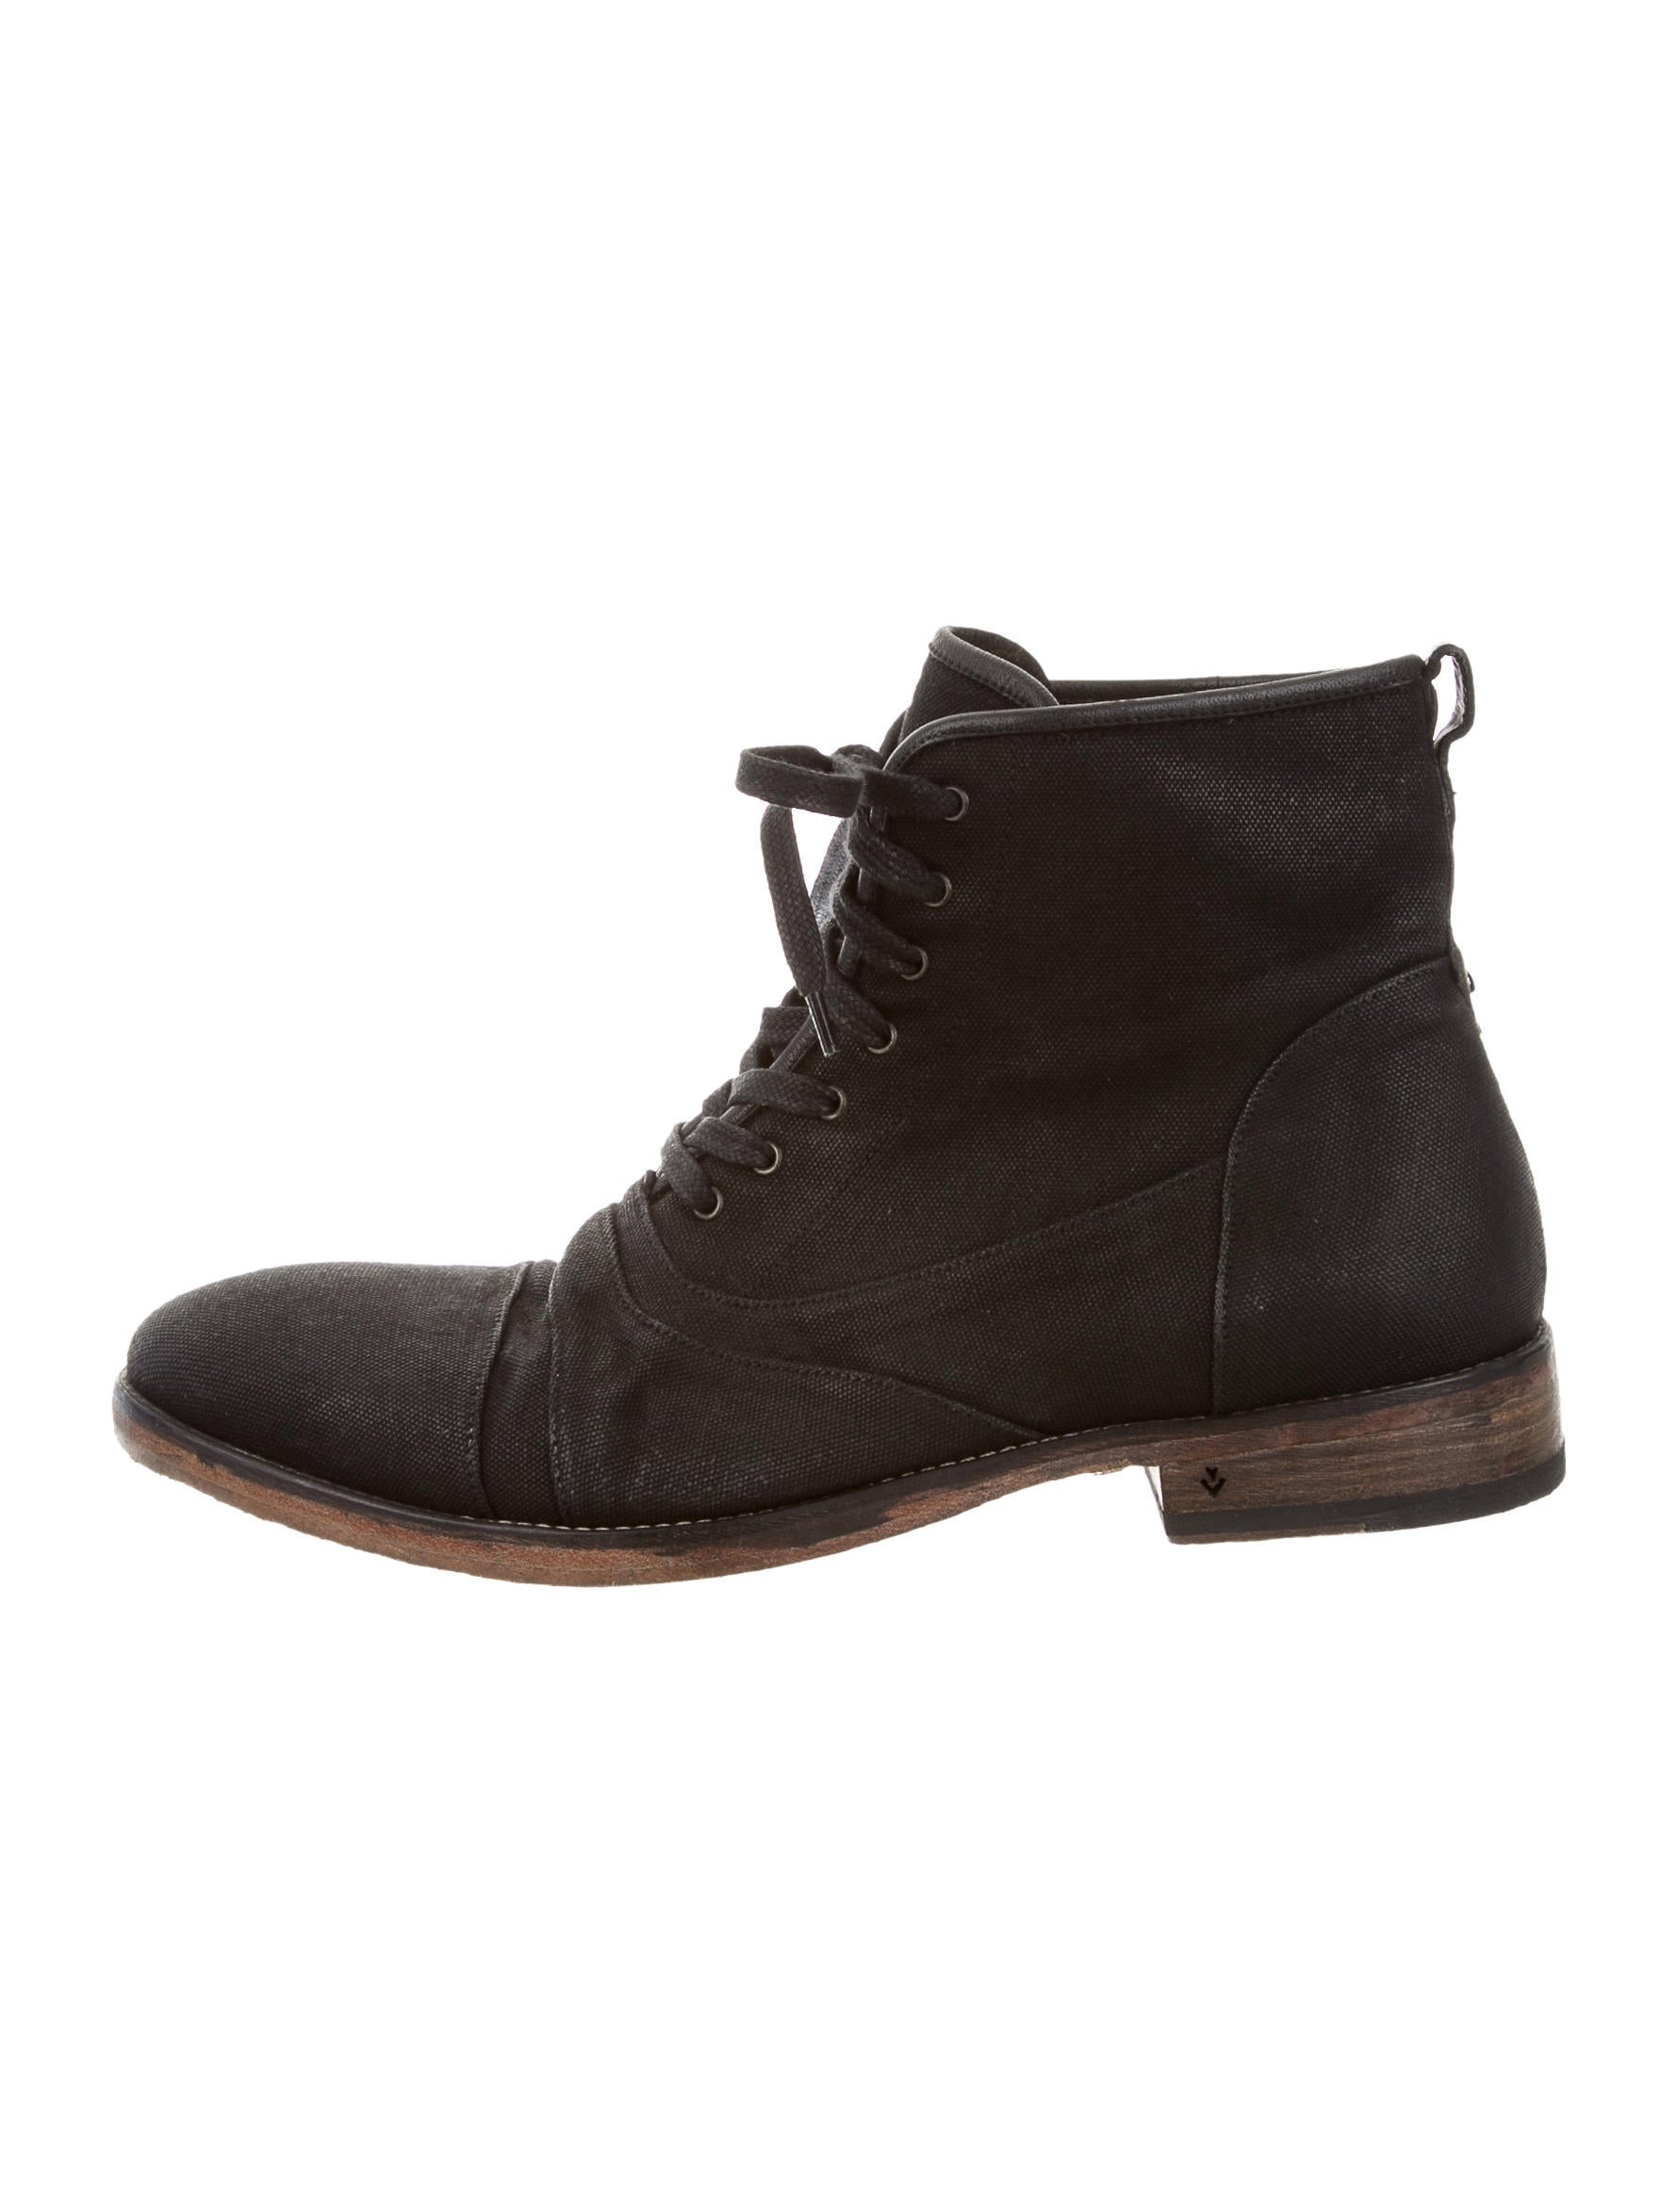 John Varvatos Canvas Ankle Boots - Shoes - JVA23254   The ...